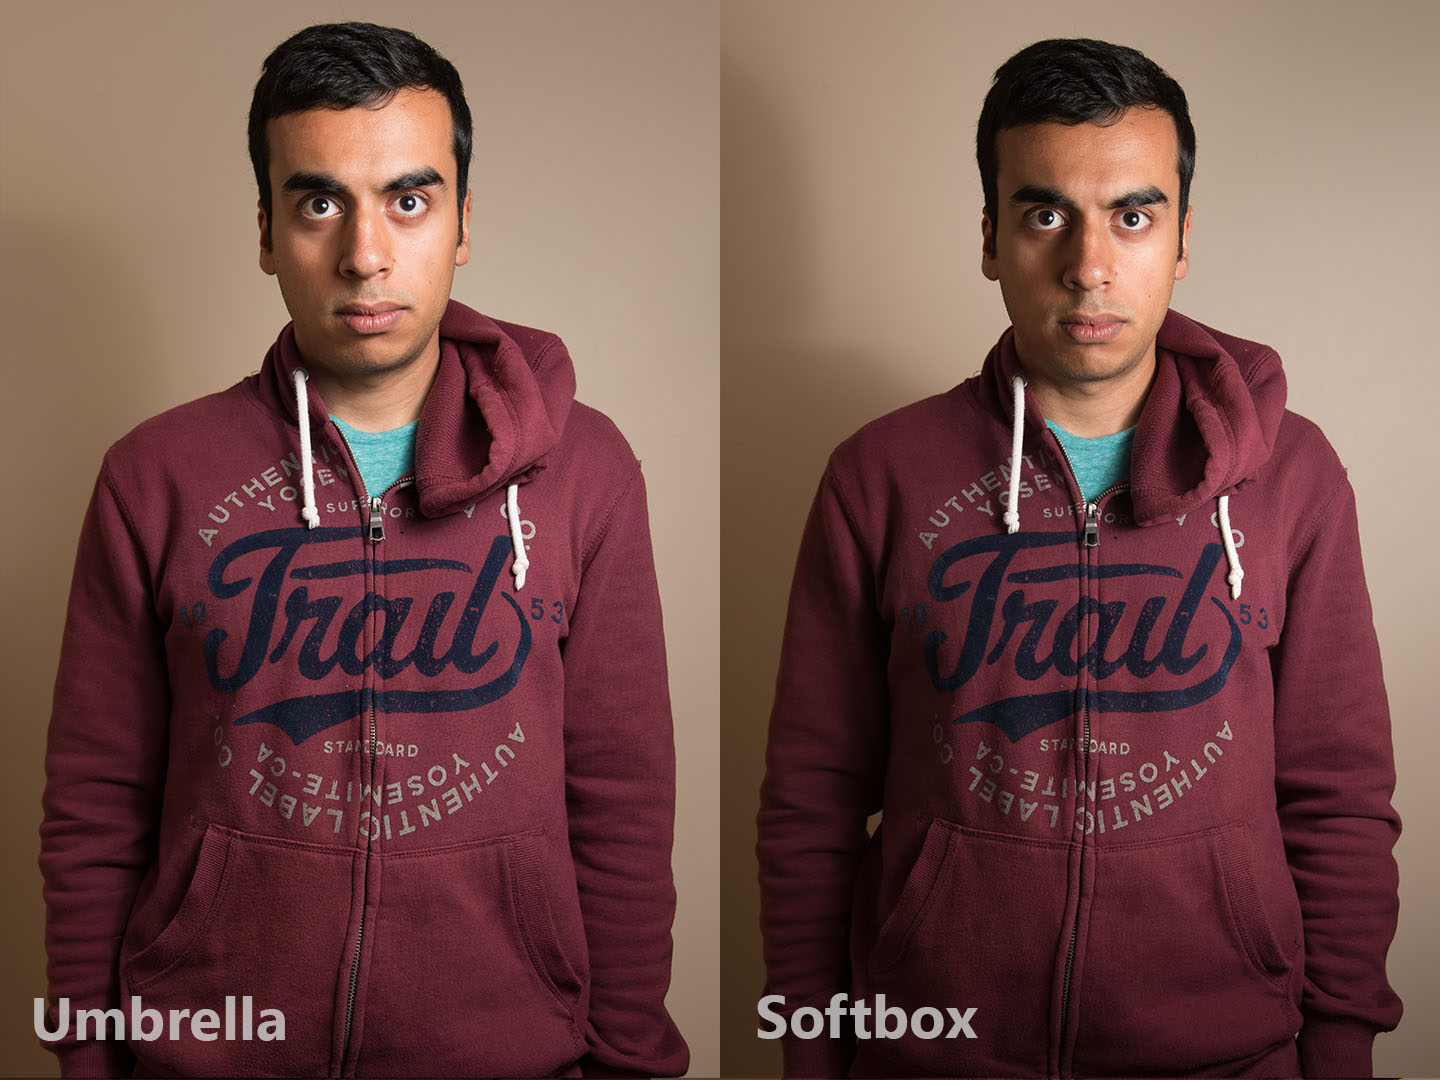 Umbrella vs softbox